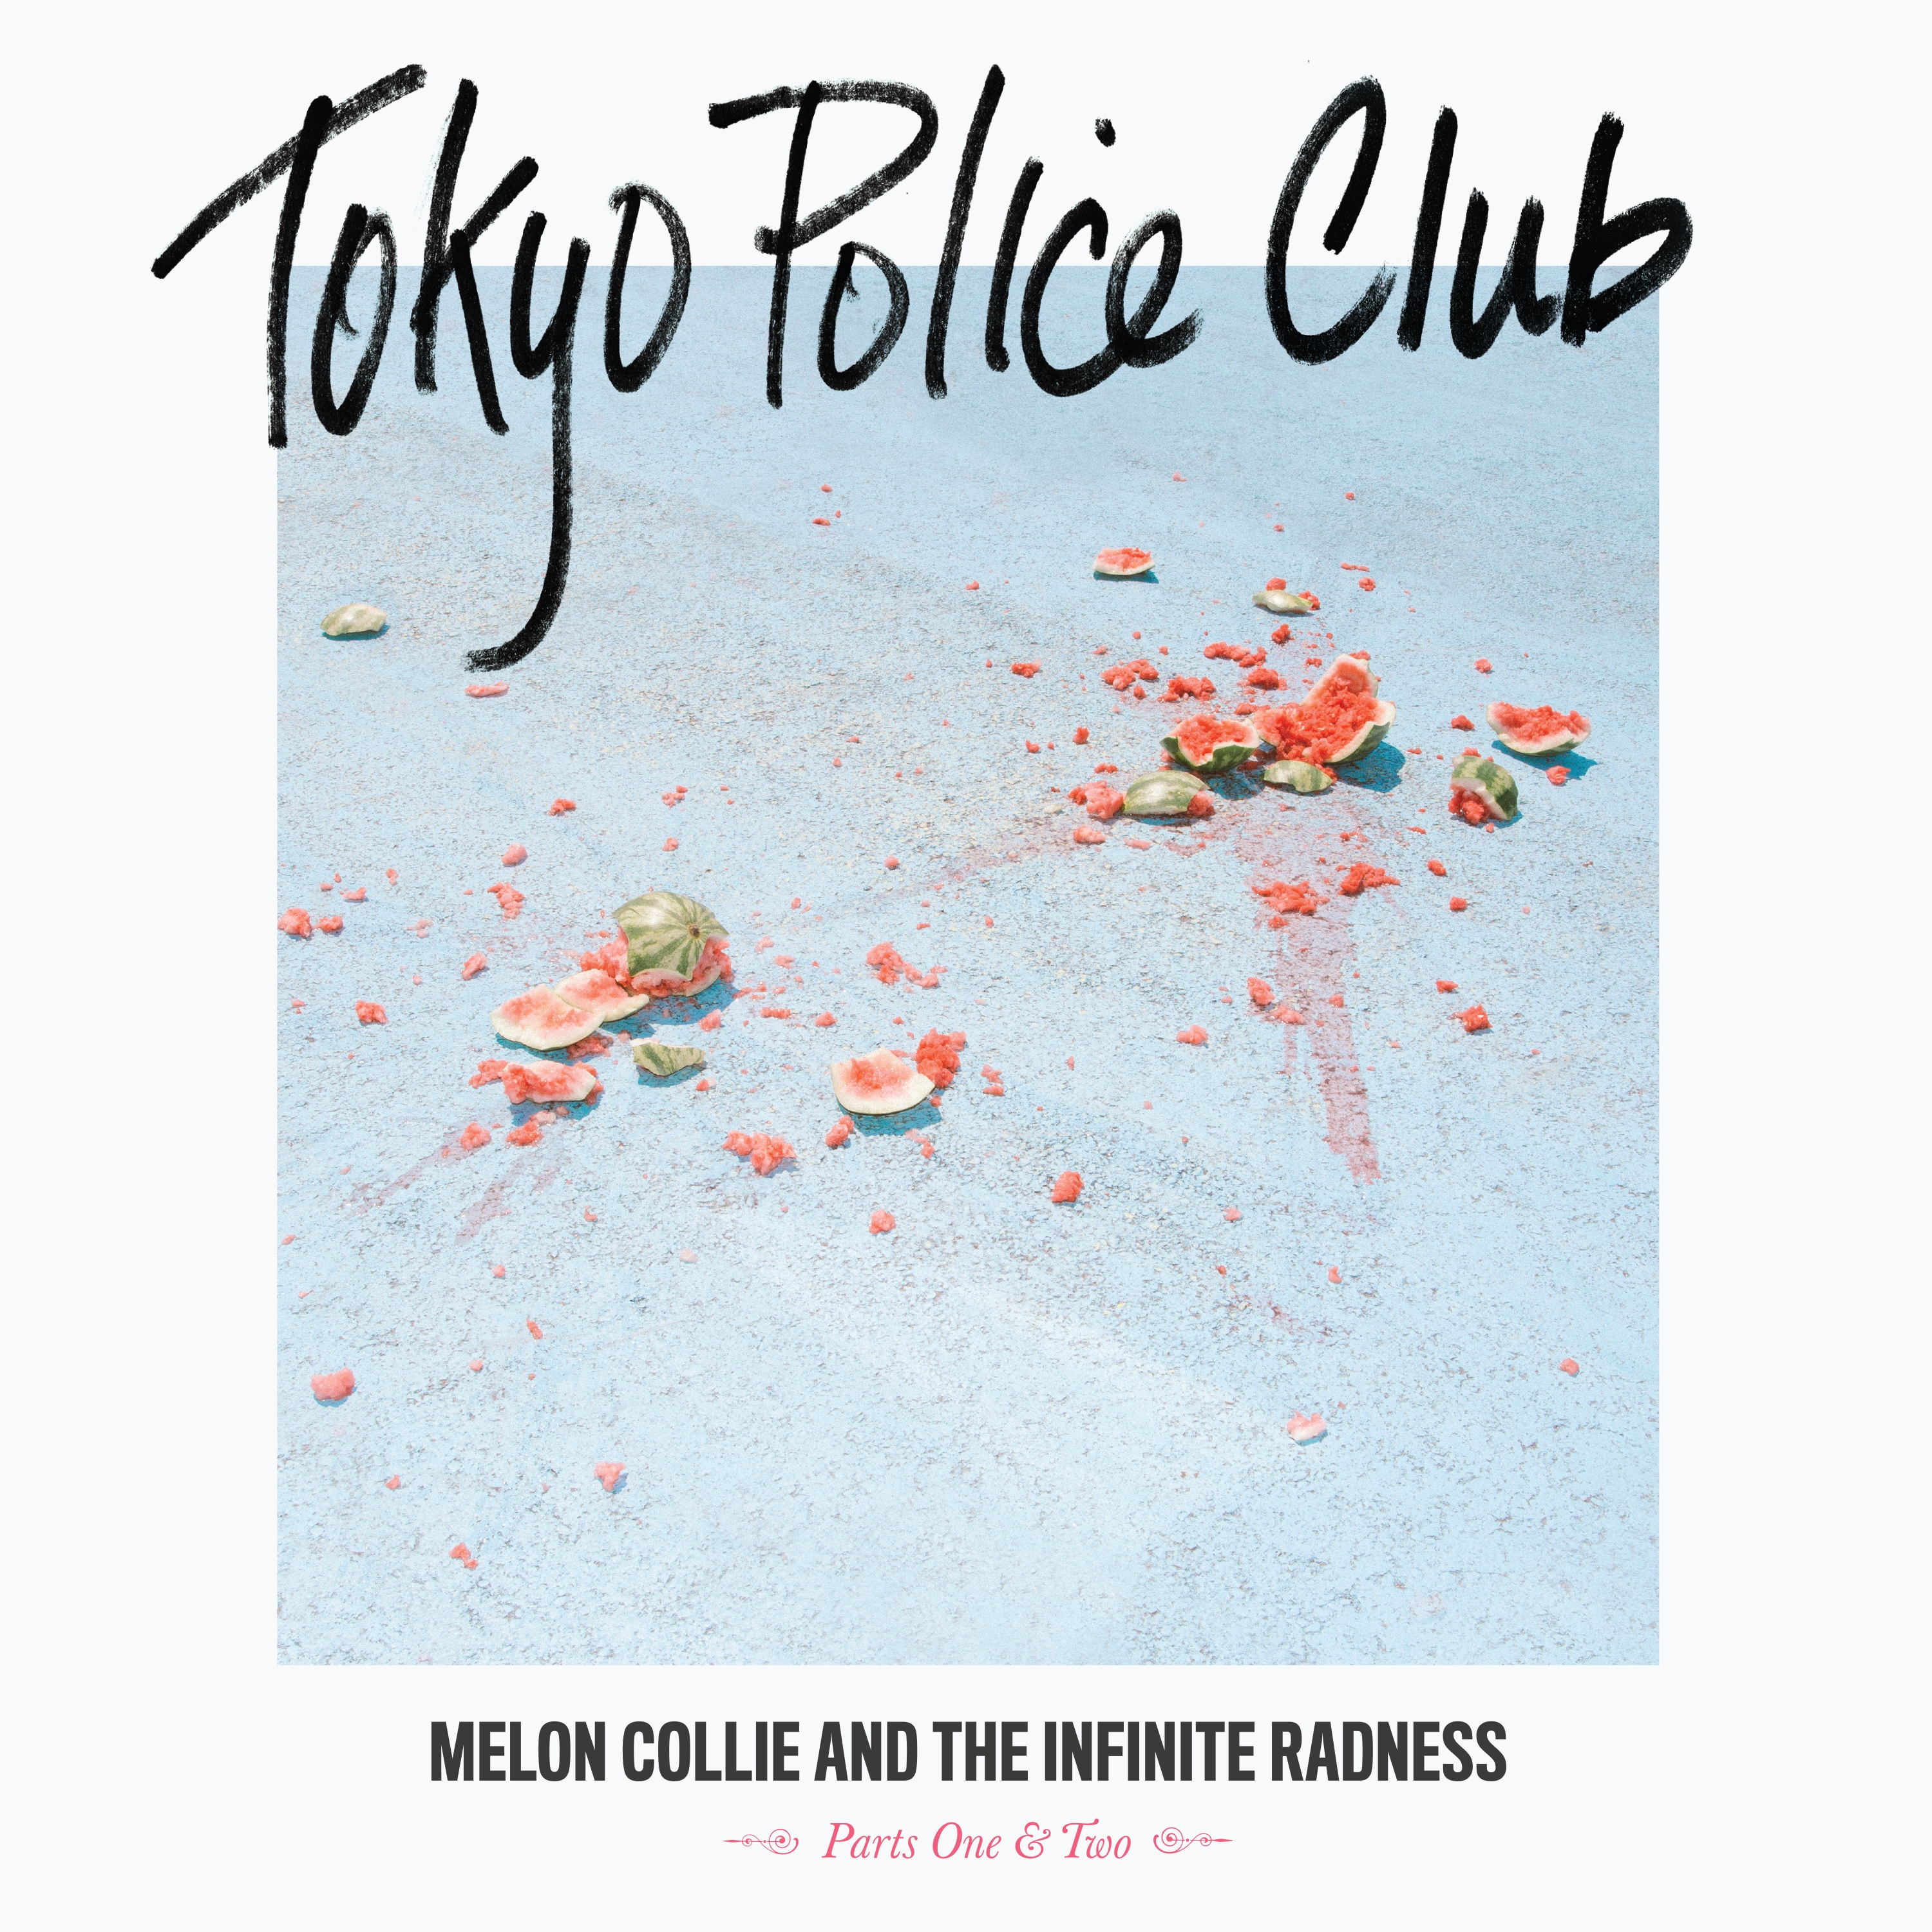 Tokyo Police Club - Melon Collie Parts One and Two